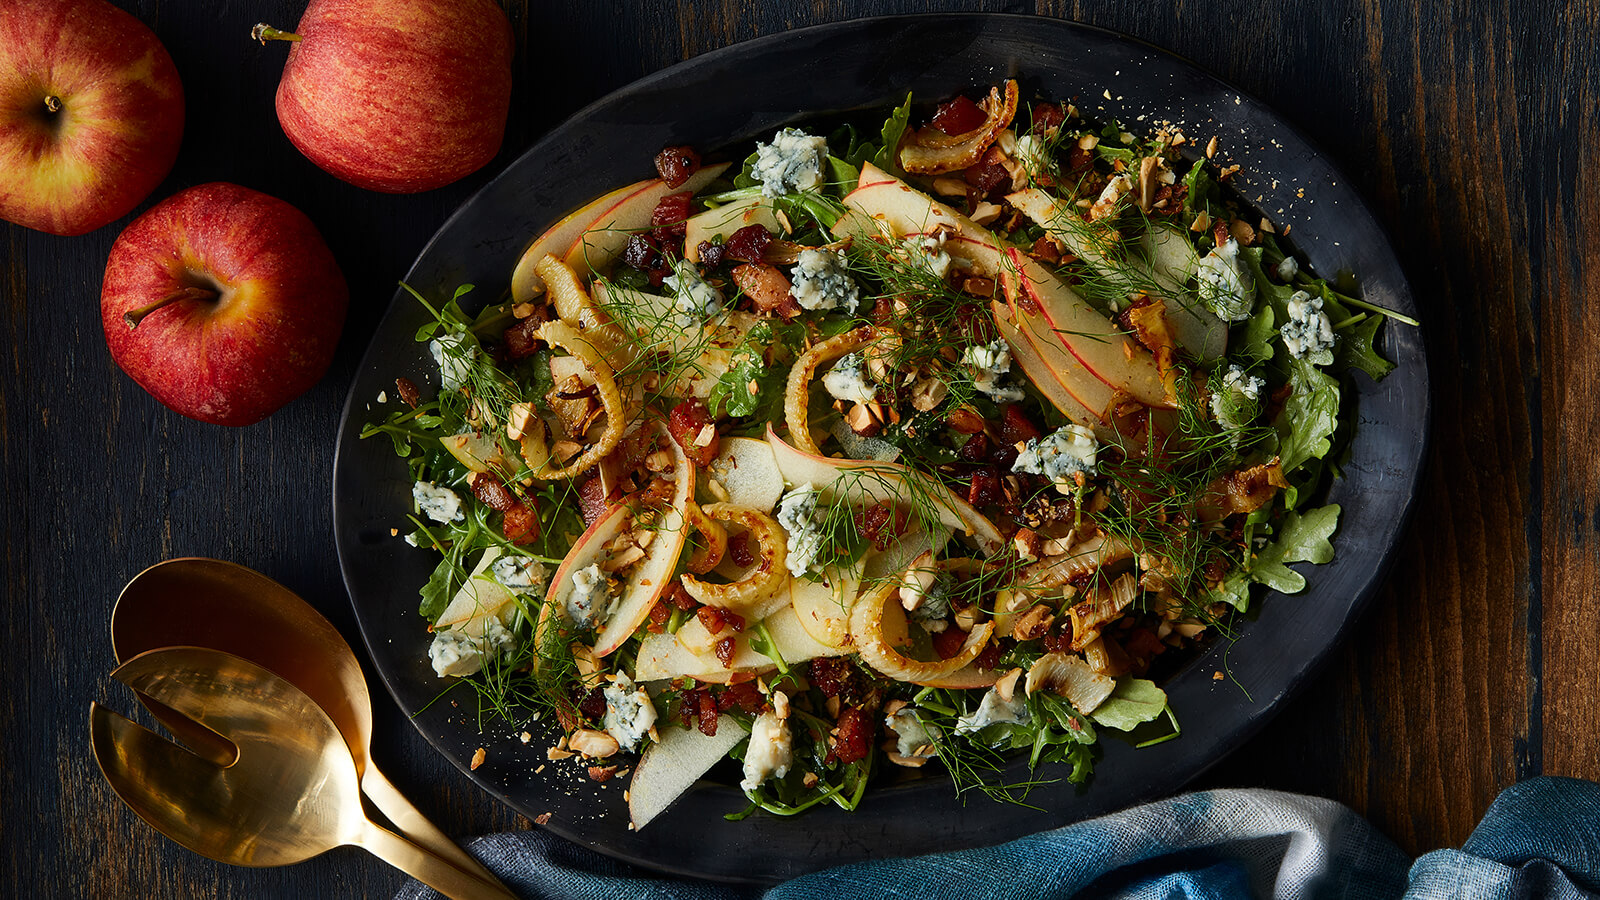 Apple and Roasted Fennel Salad with Pancetta